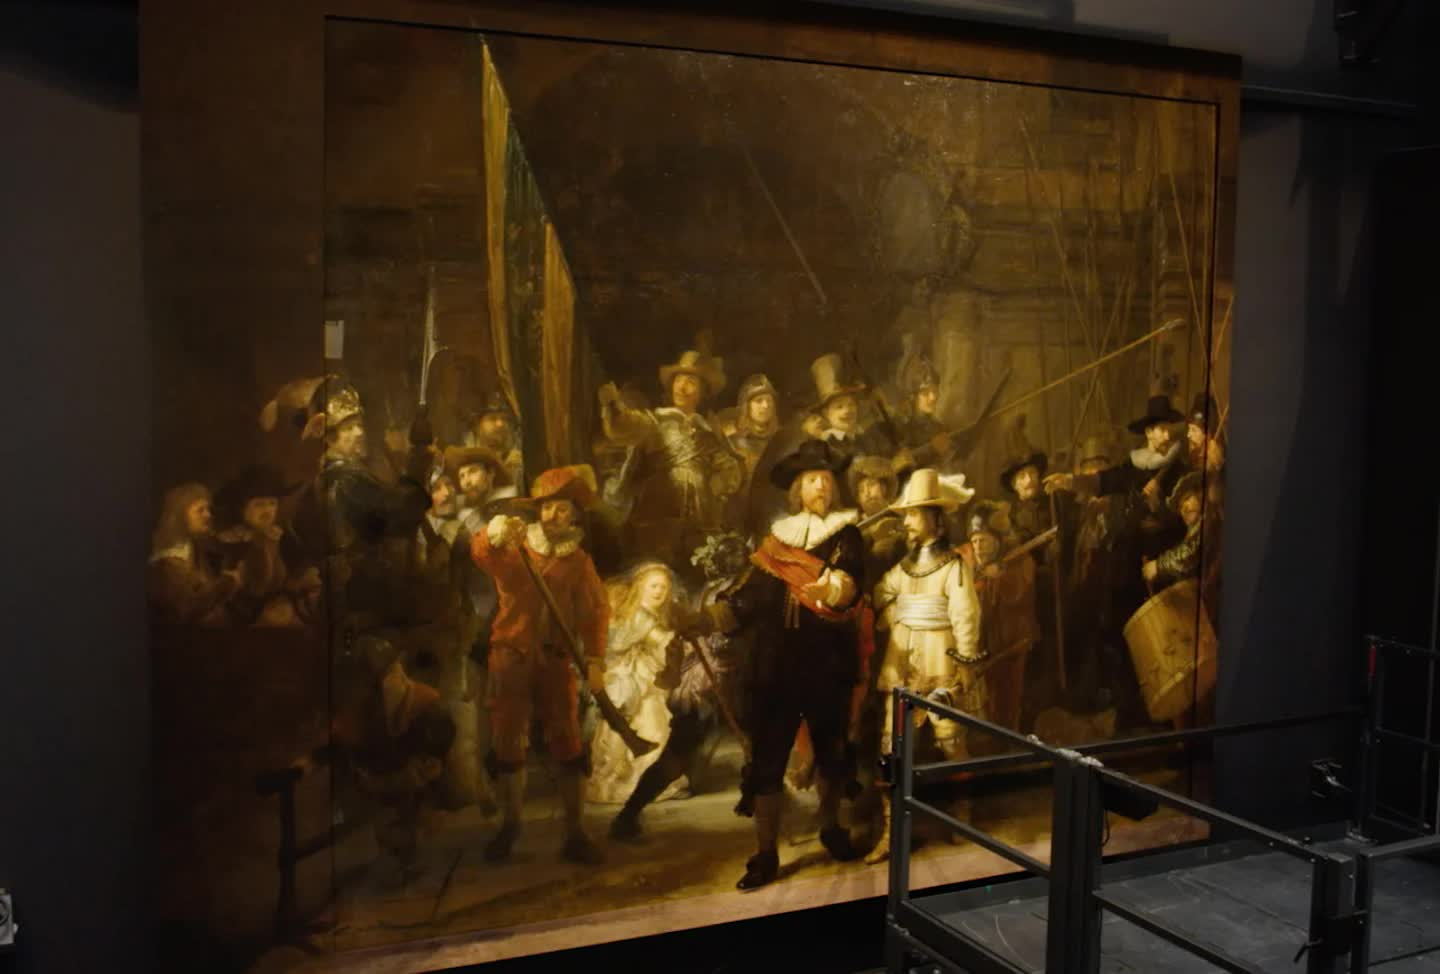 Rembrandt's 'The Night Watch' painting has been restored to its original size thanks to AI